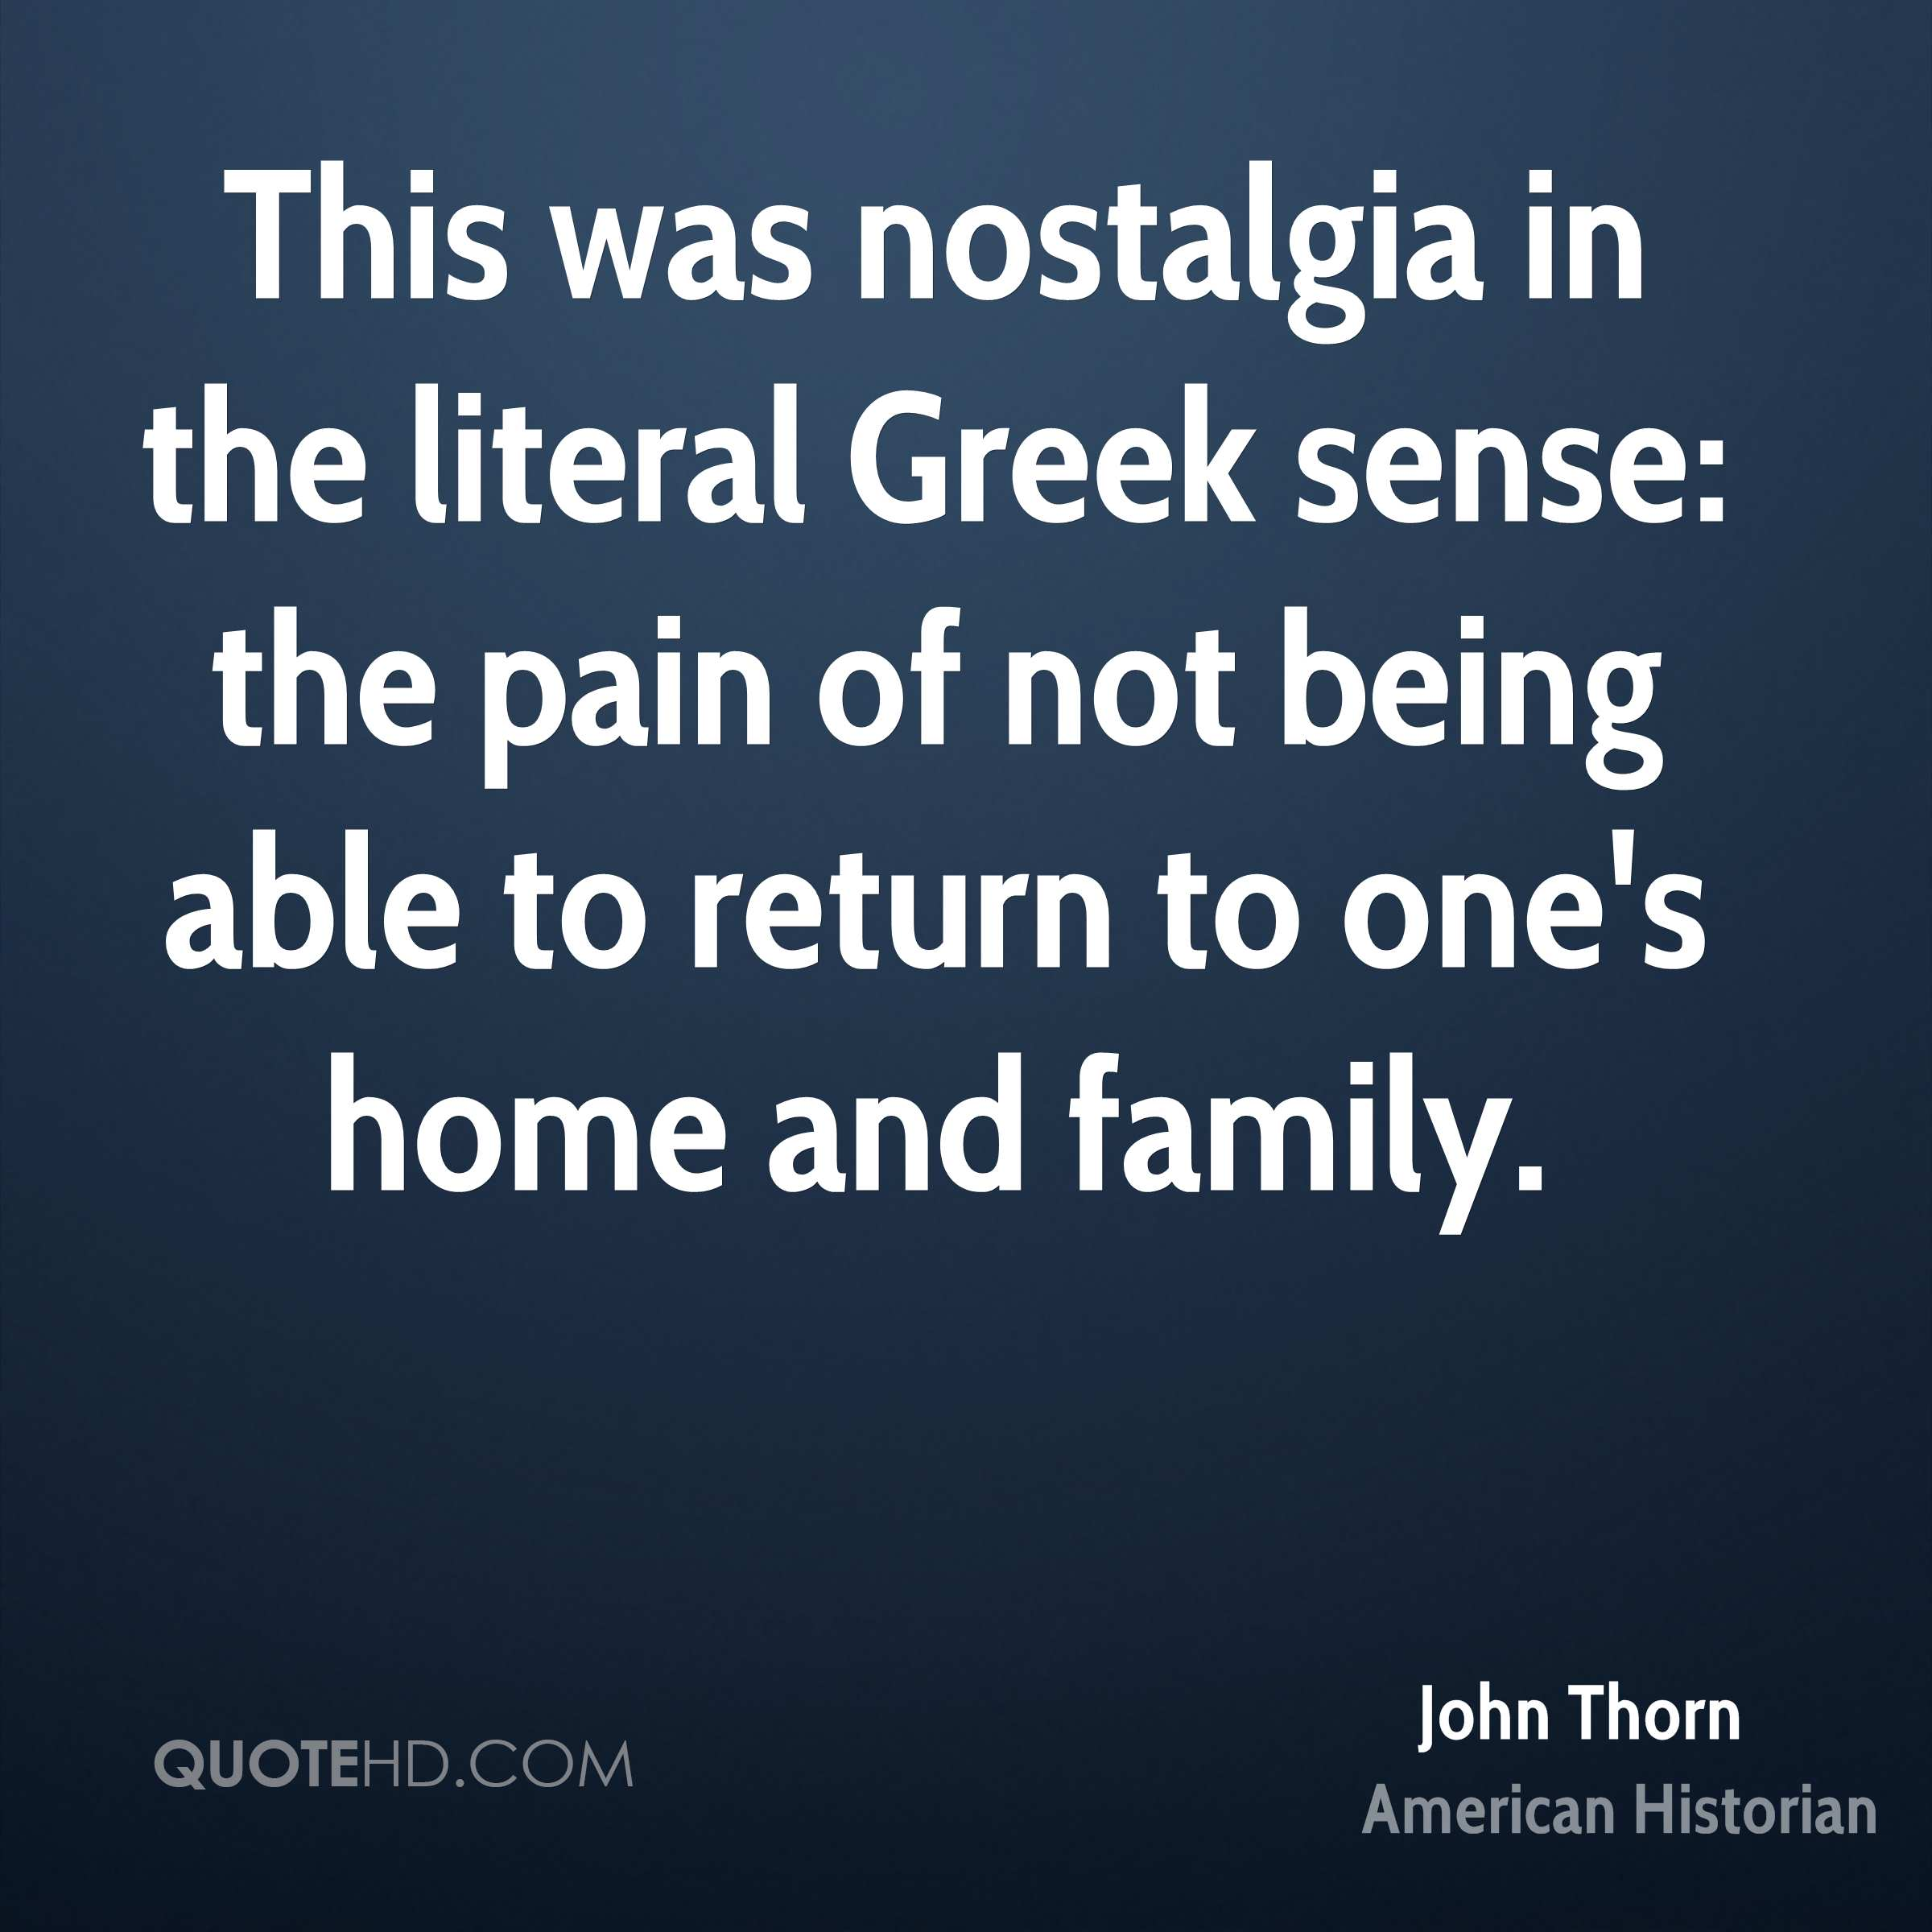 This was nostalgia in the literal Greek sense: the pain of not being able to return to one's home and family.